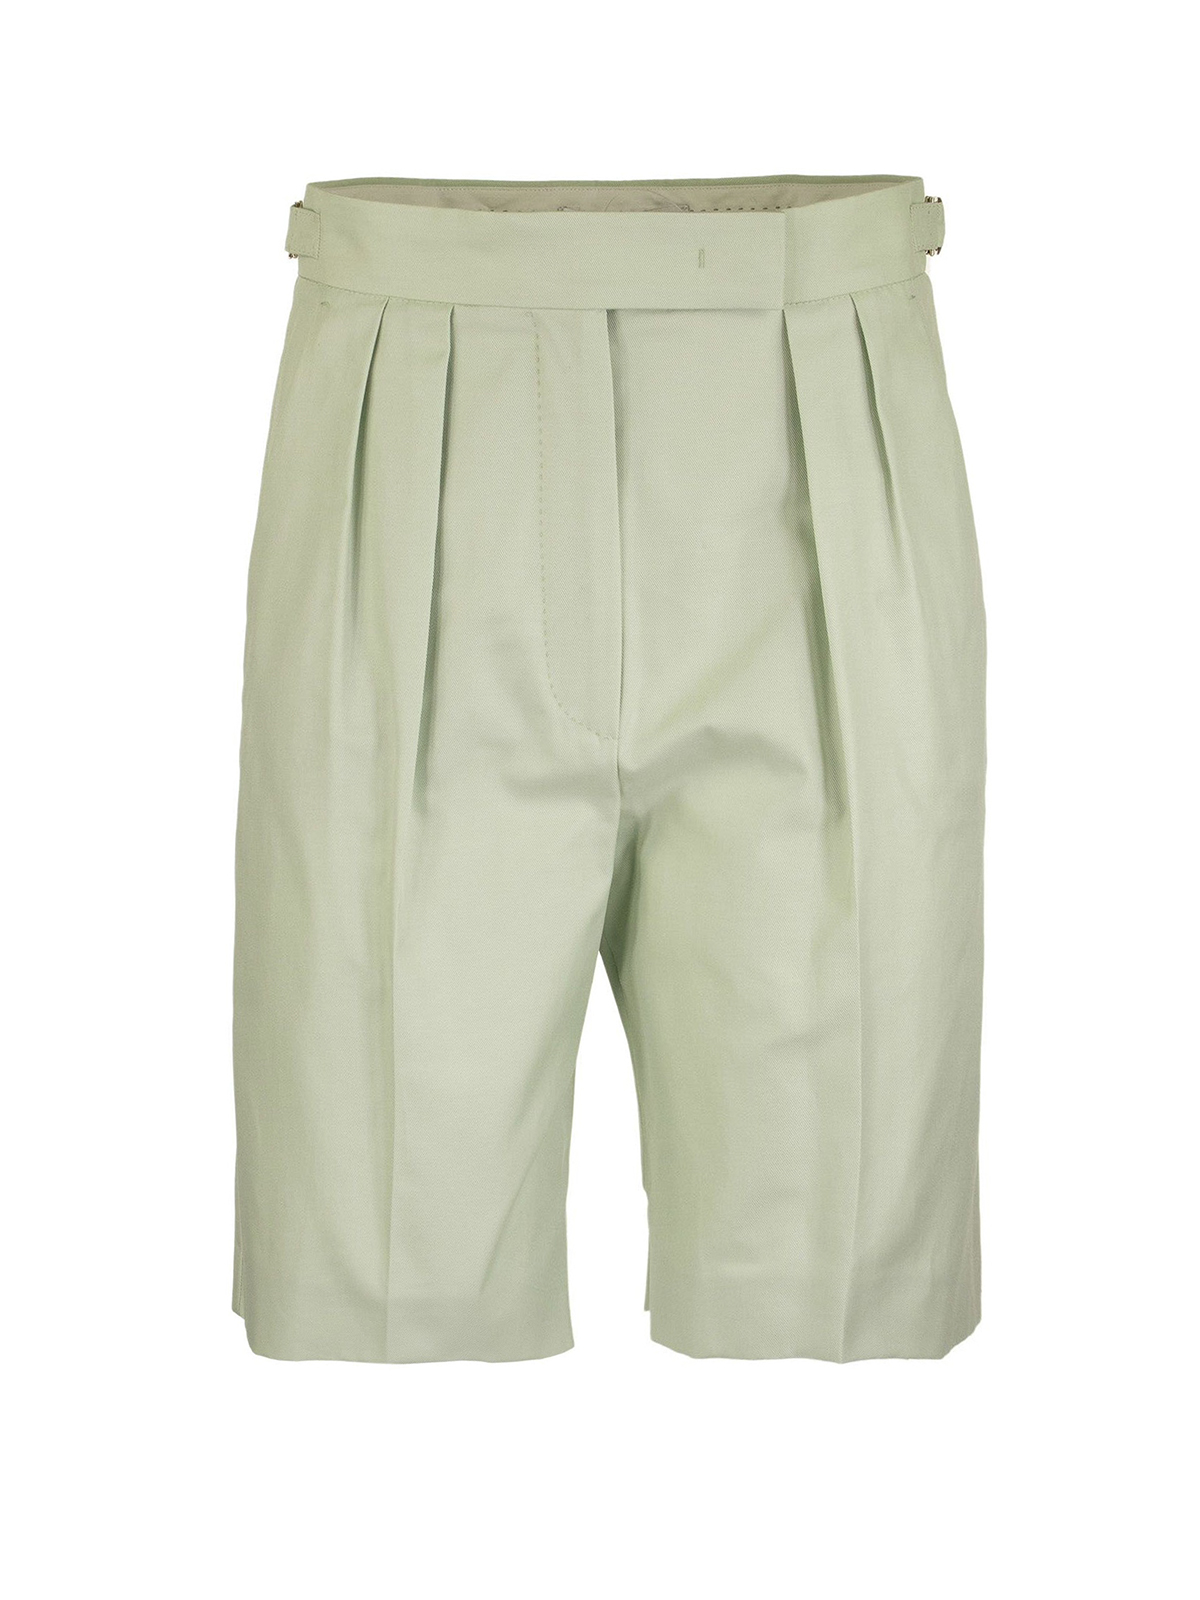 Max Mara Shorts SAFARI BERMUDA SHORTS